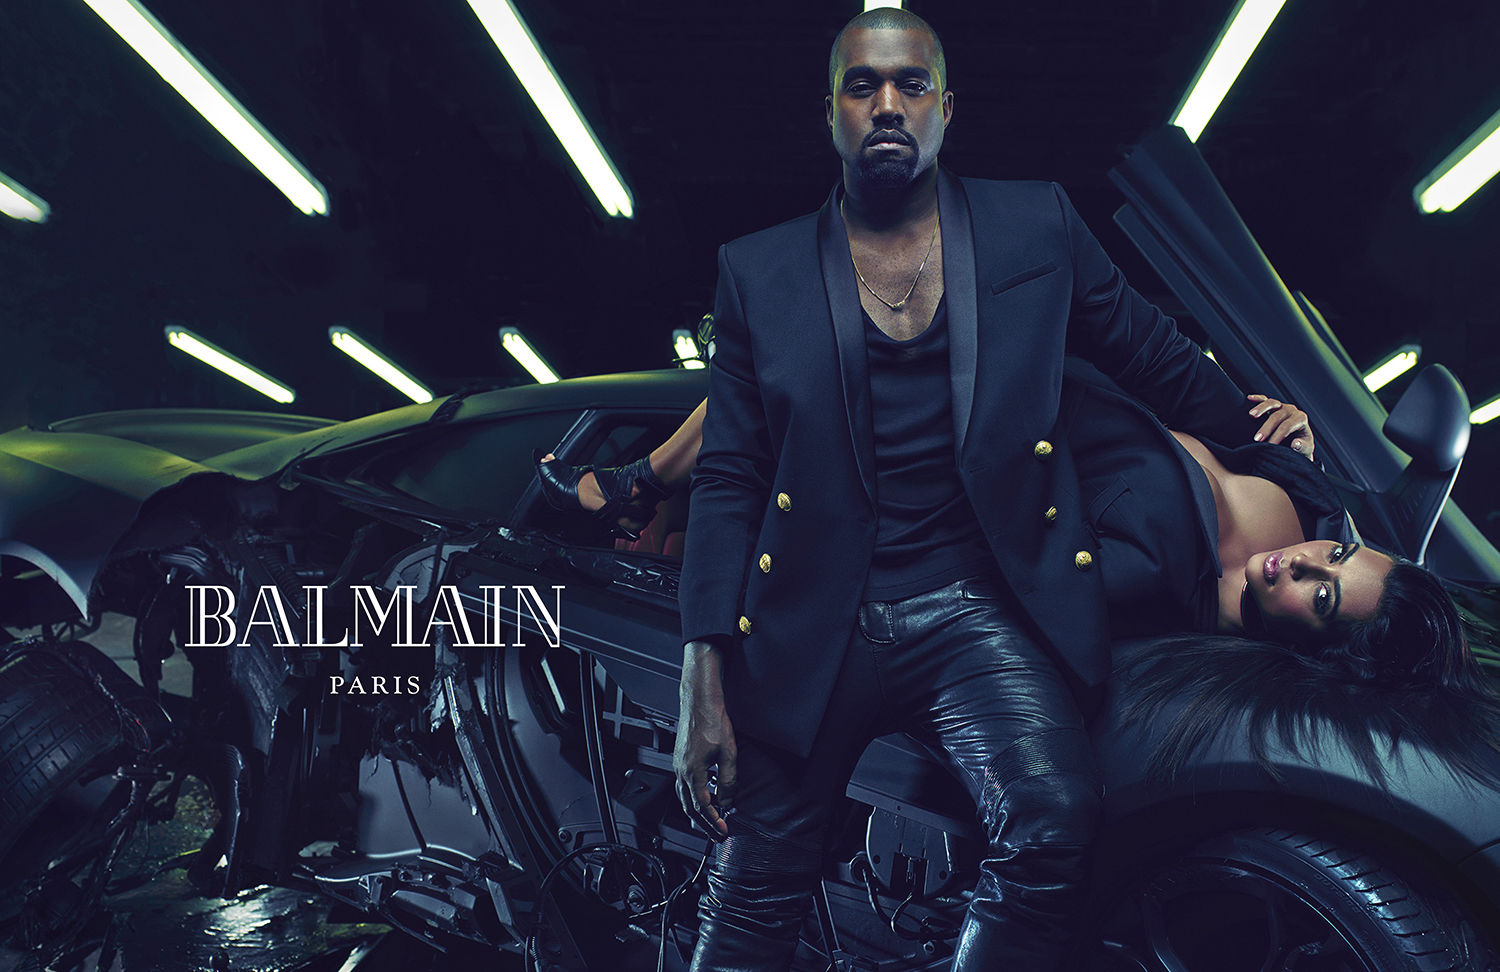 West's appearance in Balmain's 2014 campaign (Courtesy Balmain)